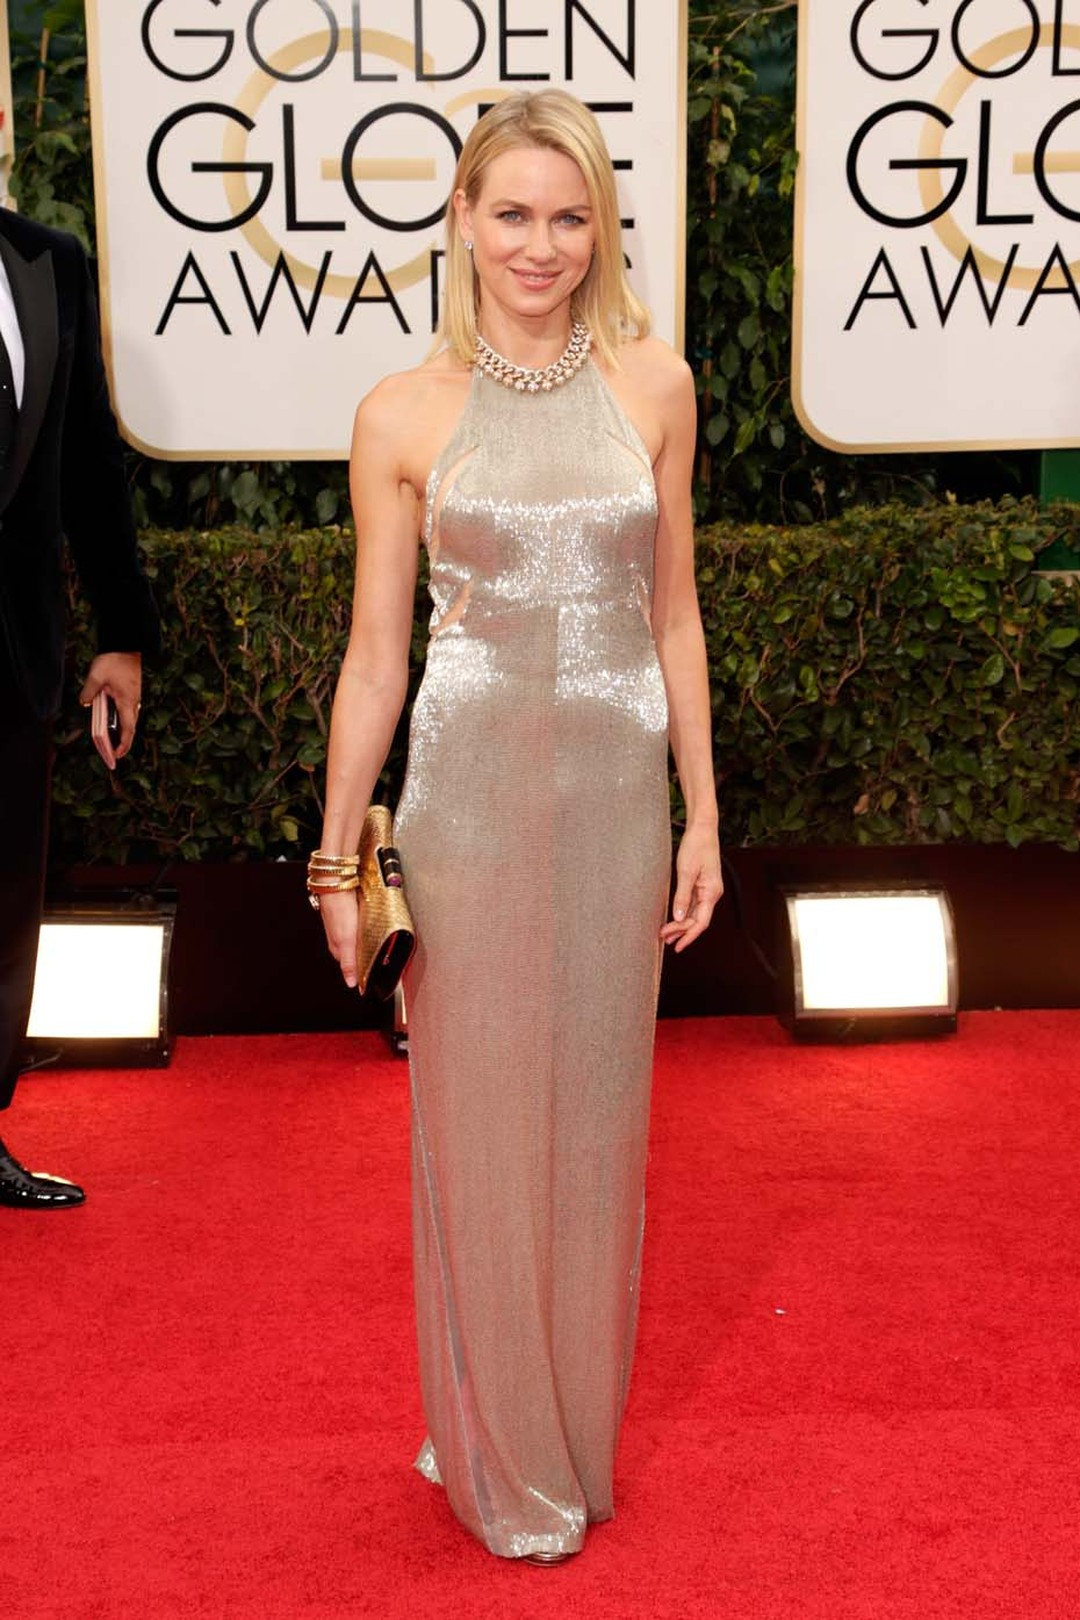 Naomi Watts glittered in gold at the 2014 Golden Globes, including a diamond necklace from Bulgari's Heritage Collection, circa 1993